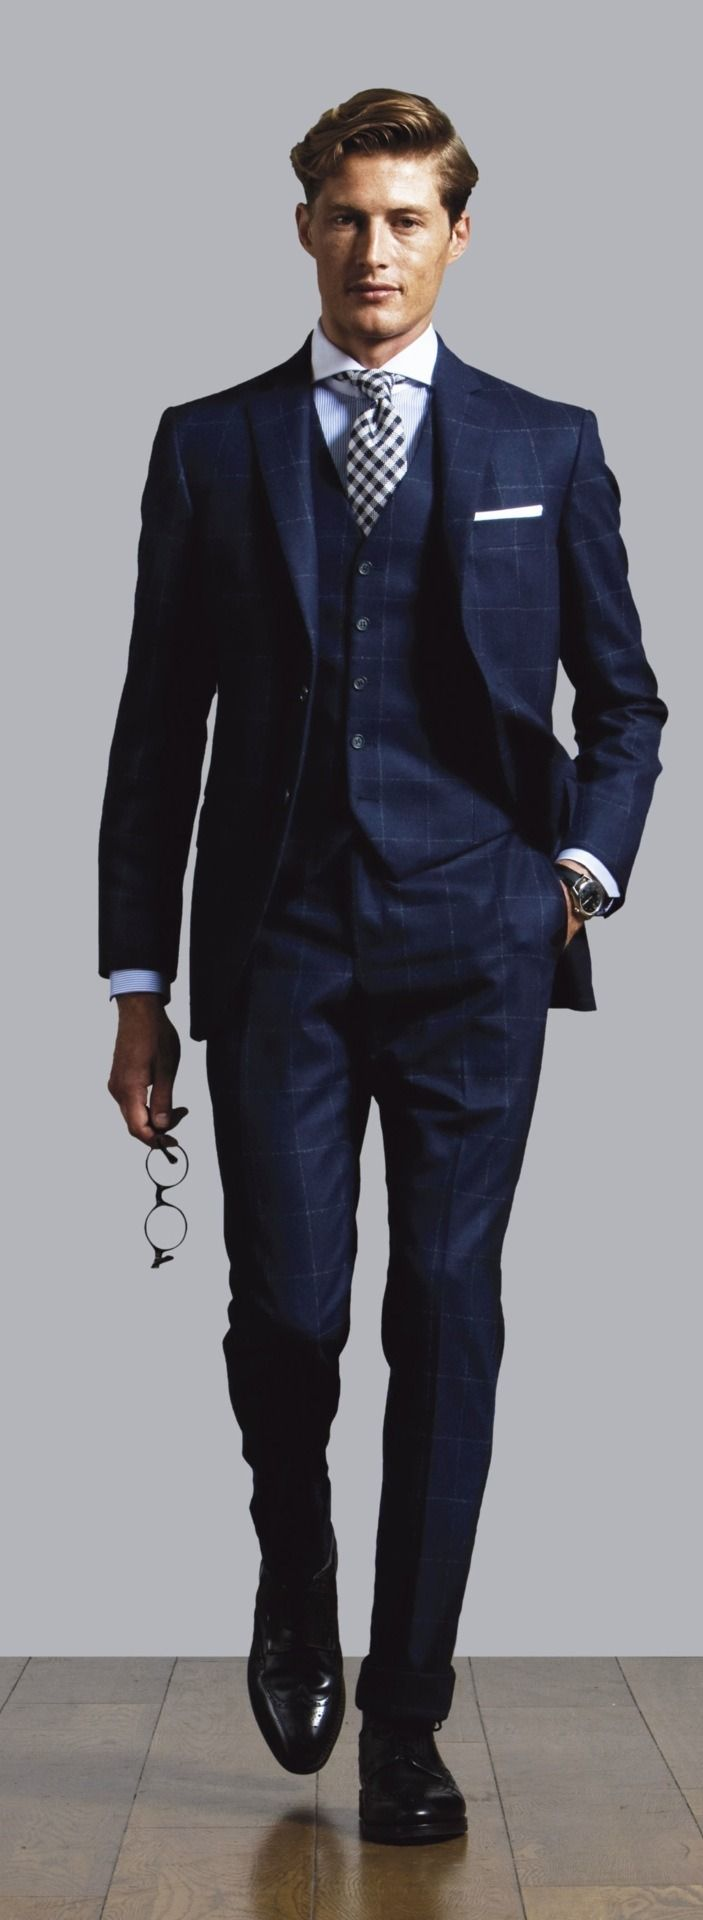 Best 25 suit combinations ideas on pinterest suit navy for Navy suit and shirt combinations